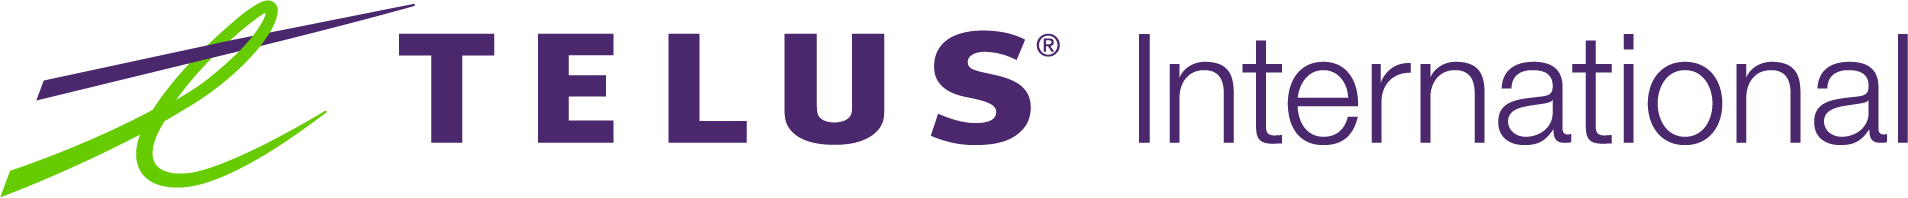 Telus International logo